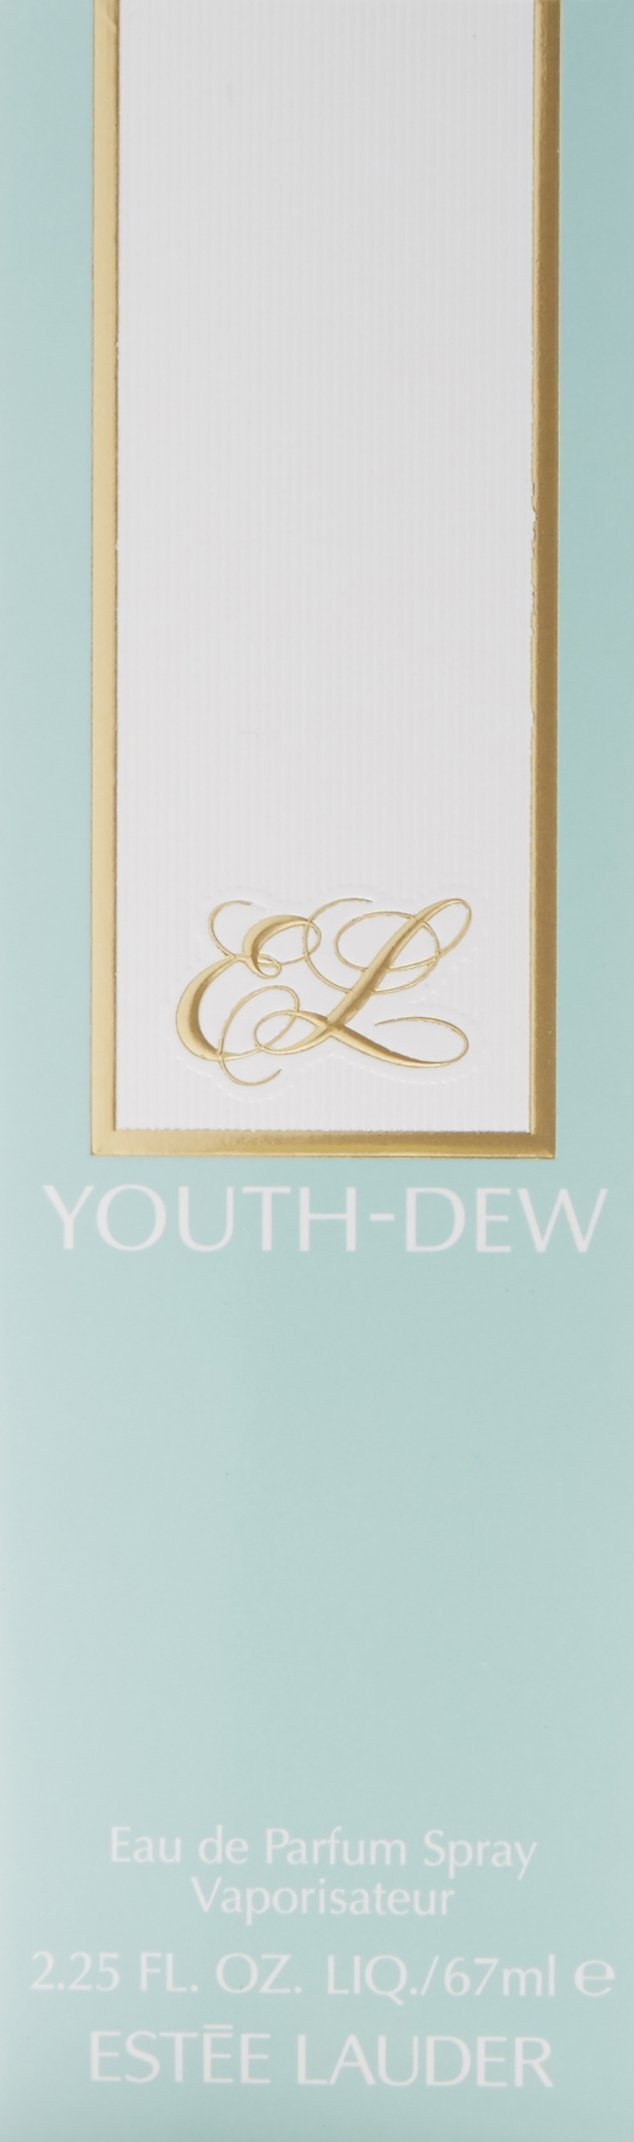 Youth Dew by Estee Lauder for Women - 2.25 Ounce EDP Spray by Estee Lauder (Image #3)